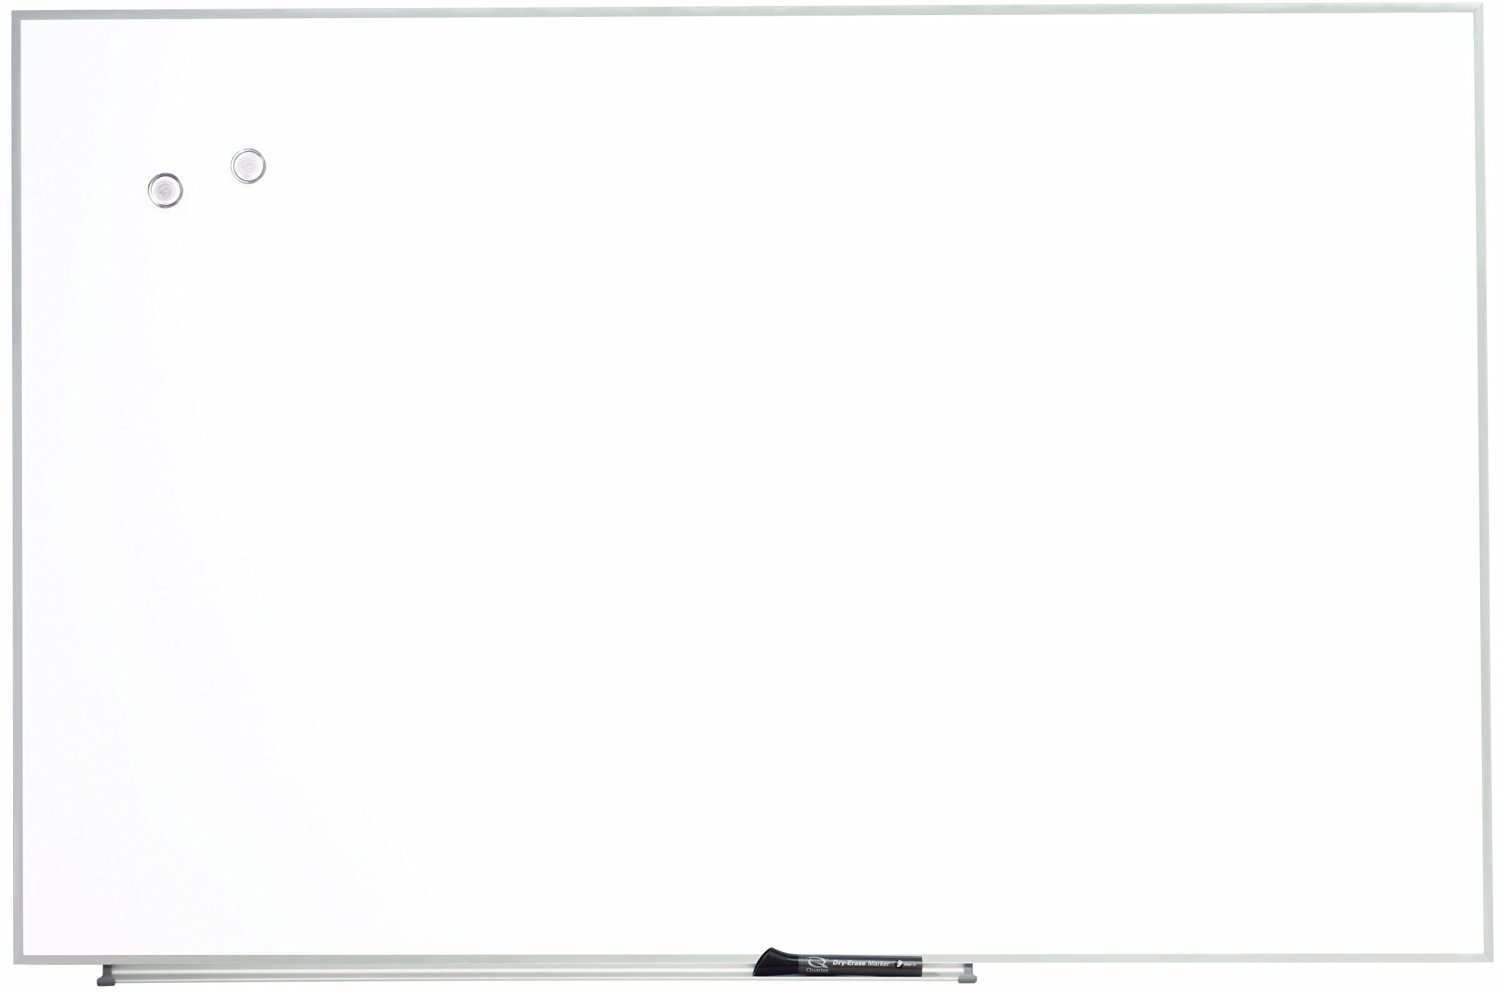 Quartet Products - Quartet - Magnetic Dry Erase Board, Painted Steel, 48 x 31, White, Aluminum Frame - Sold As 1 Each - Mixing, match and connect multiple boards to suit your meeting and workspace needs. - Hang vertically or horizontally with included wall mounting hardware. - Mount to cubicle